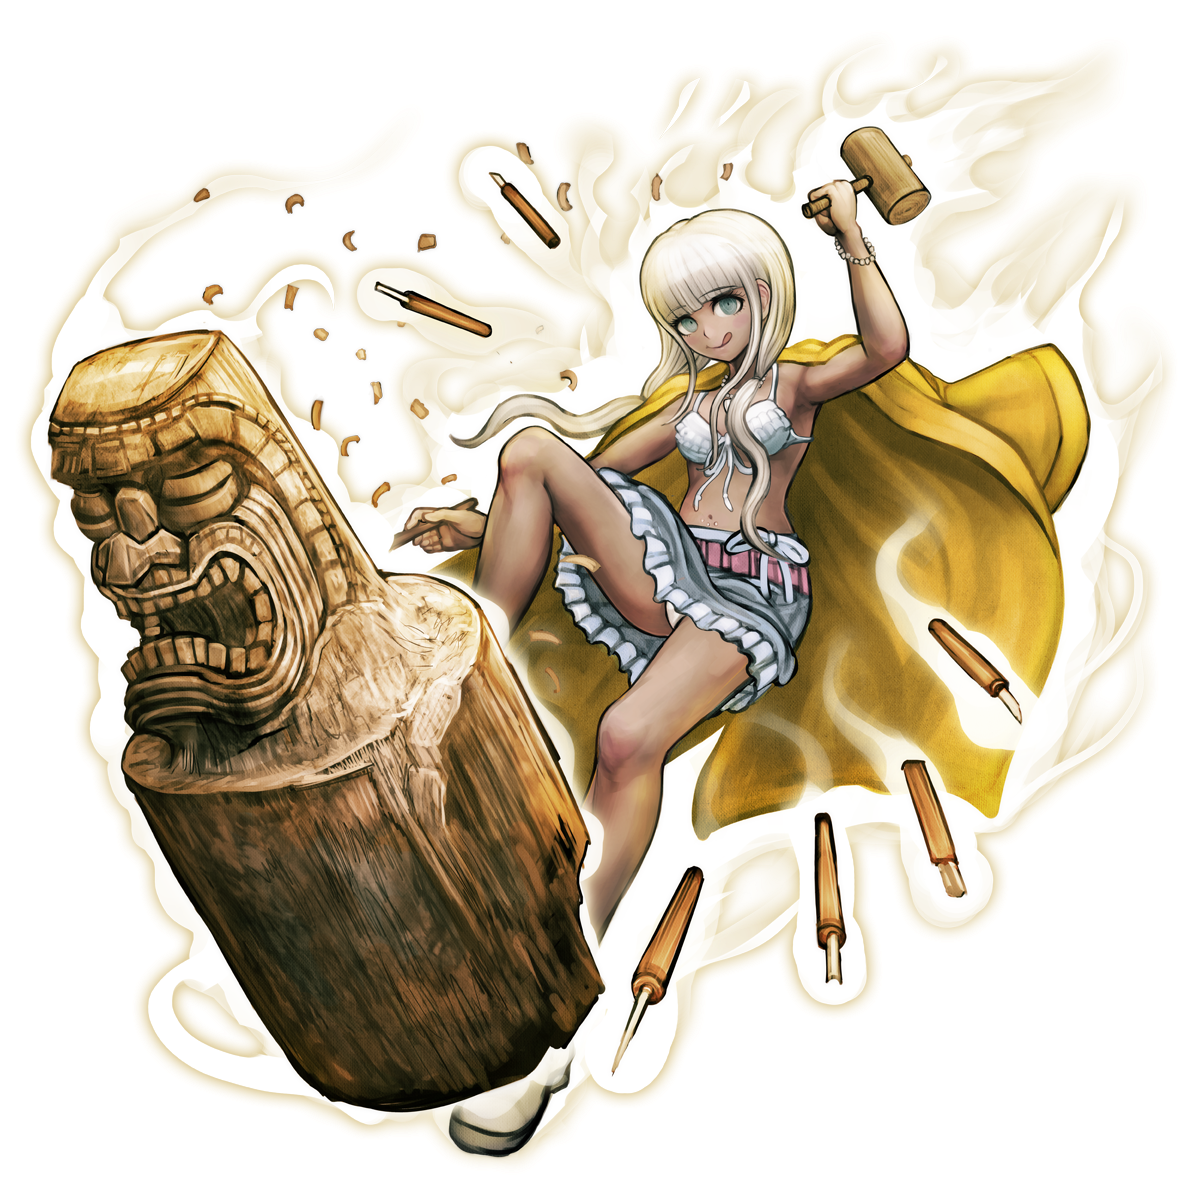 Angie Yonaga | Danganronpa Wiki | FANDOM powered by Wikia